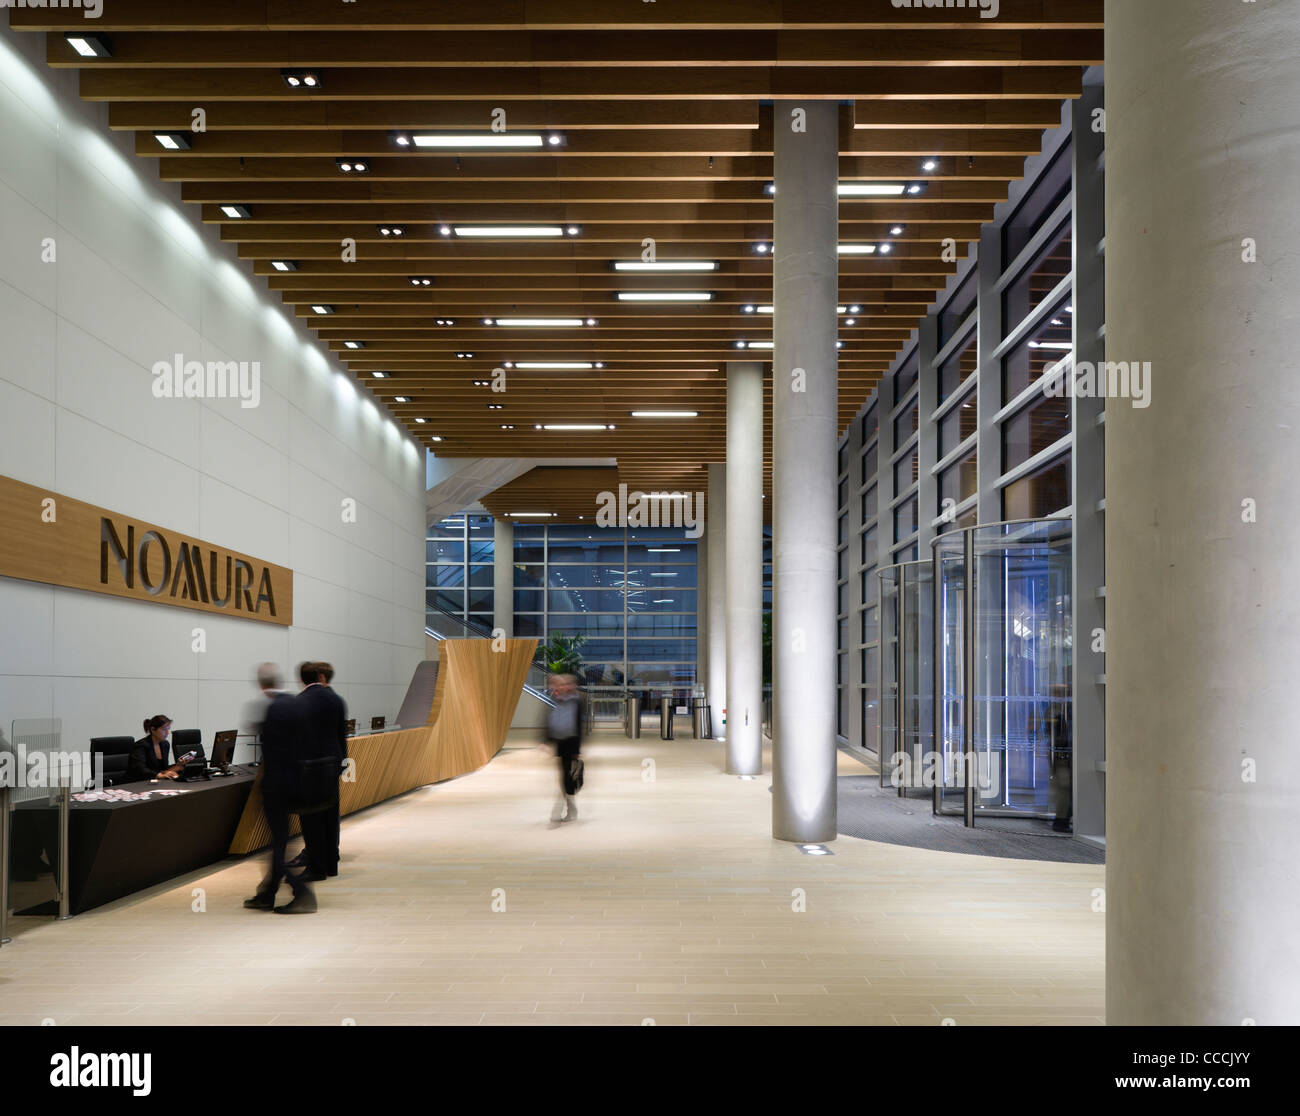 office lobby design. Office Entrance Lobby To Watermark Place, Occupied By Nomura. Architecture  Fletcher Priest And Lighting Design Waterman Office Lobby Design